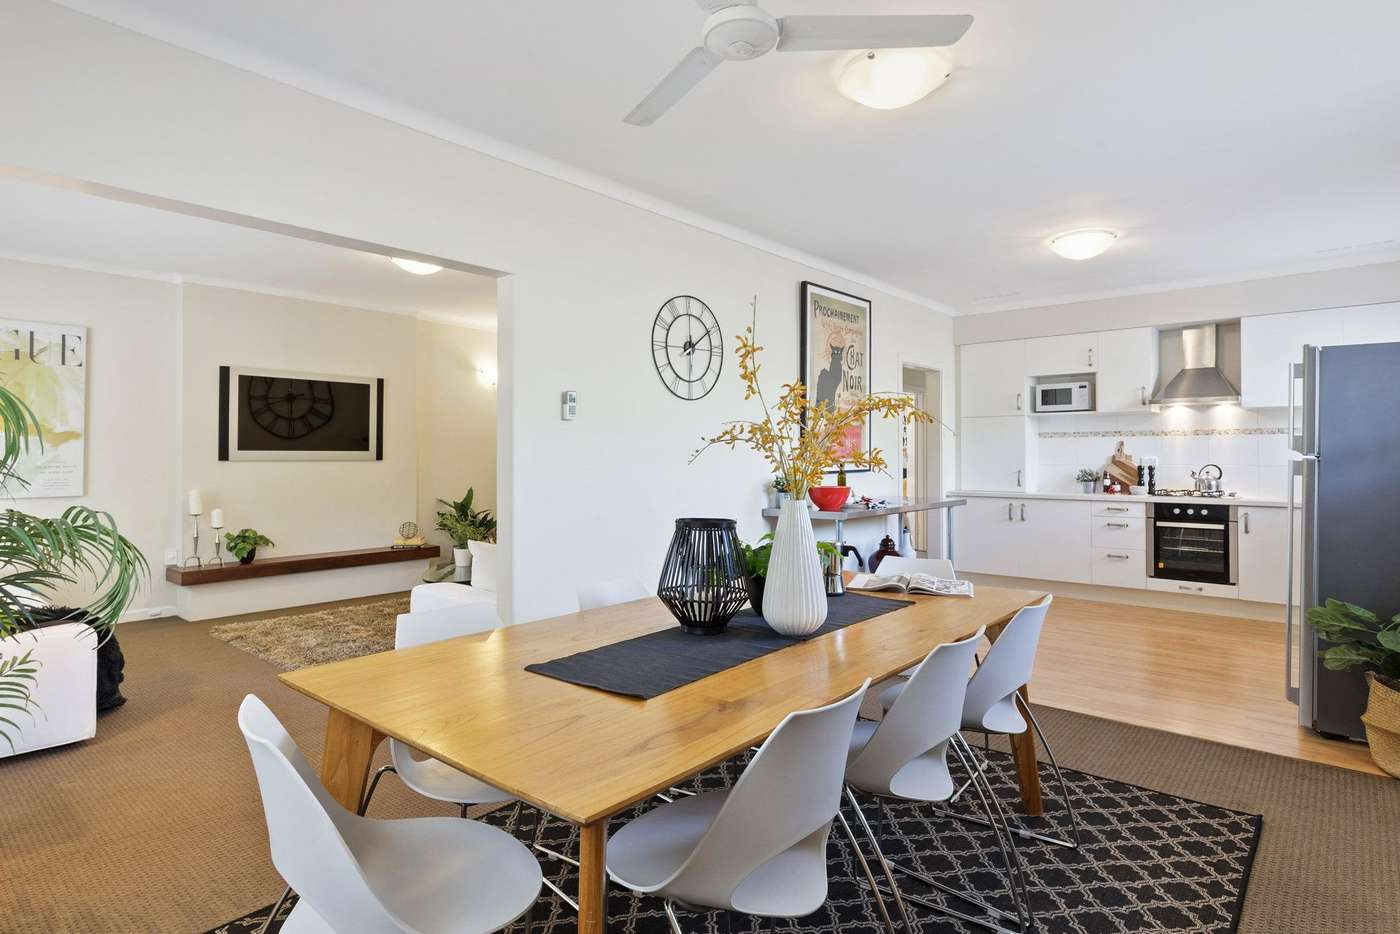 Main view of Homely house listing, 78 Derby Road, Shenton Park WA 6008